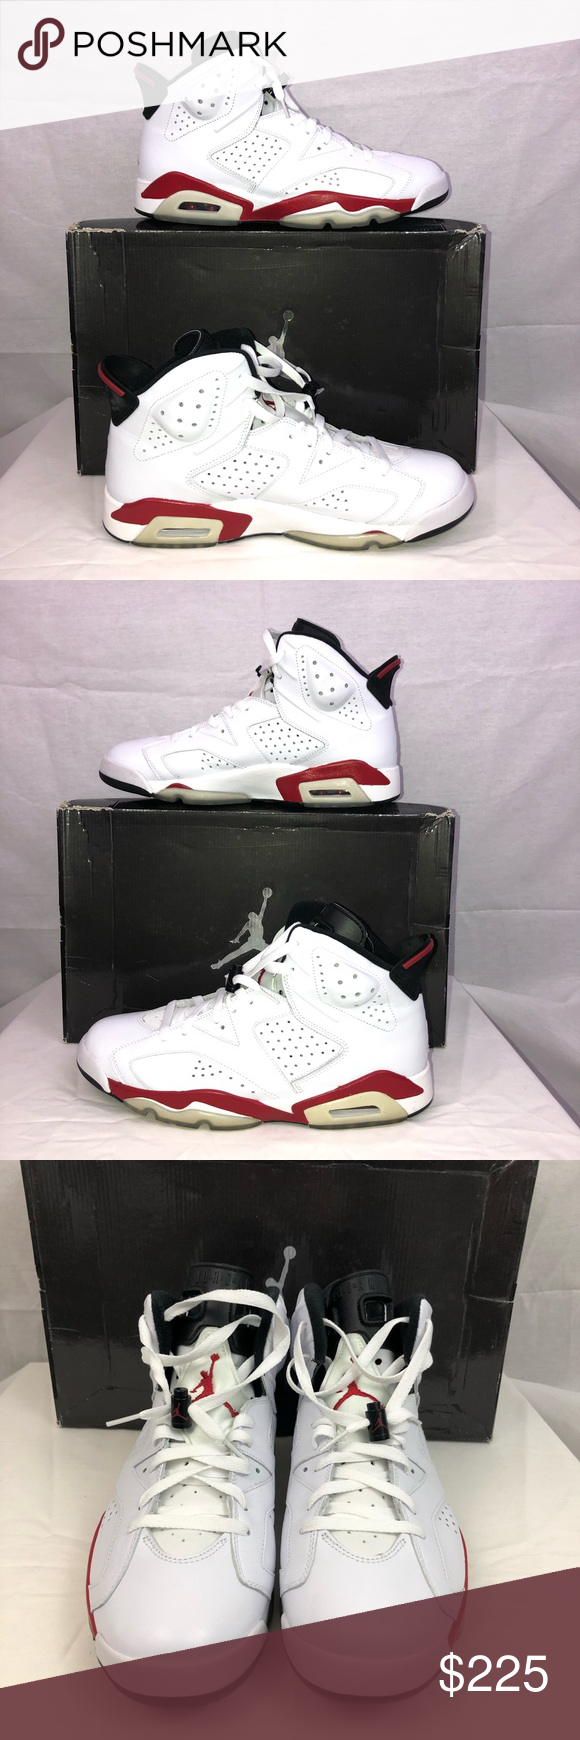 2d6552077a5d Nike Air Jordan 6 Retro 2009 White Varsity Red Nike Air Jordan Retro 6 (2009)  White Varsity Red With Box Like New only worn 1 time Excellent condition No  ...